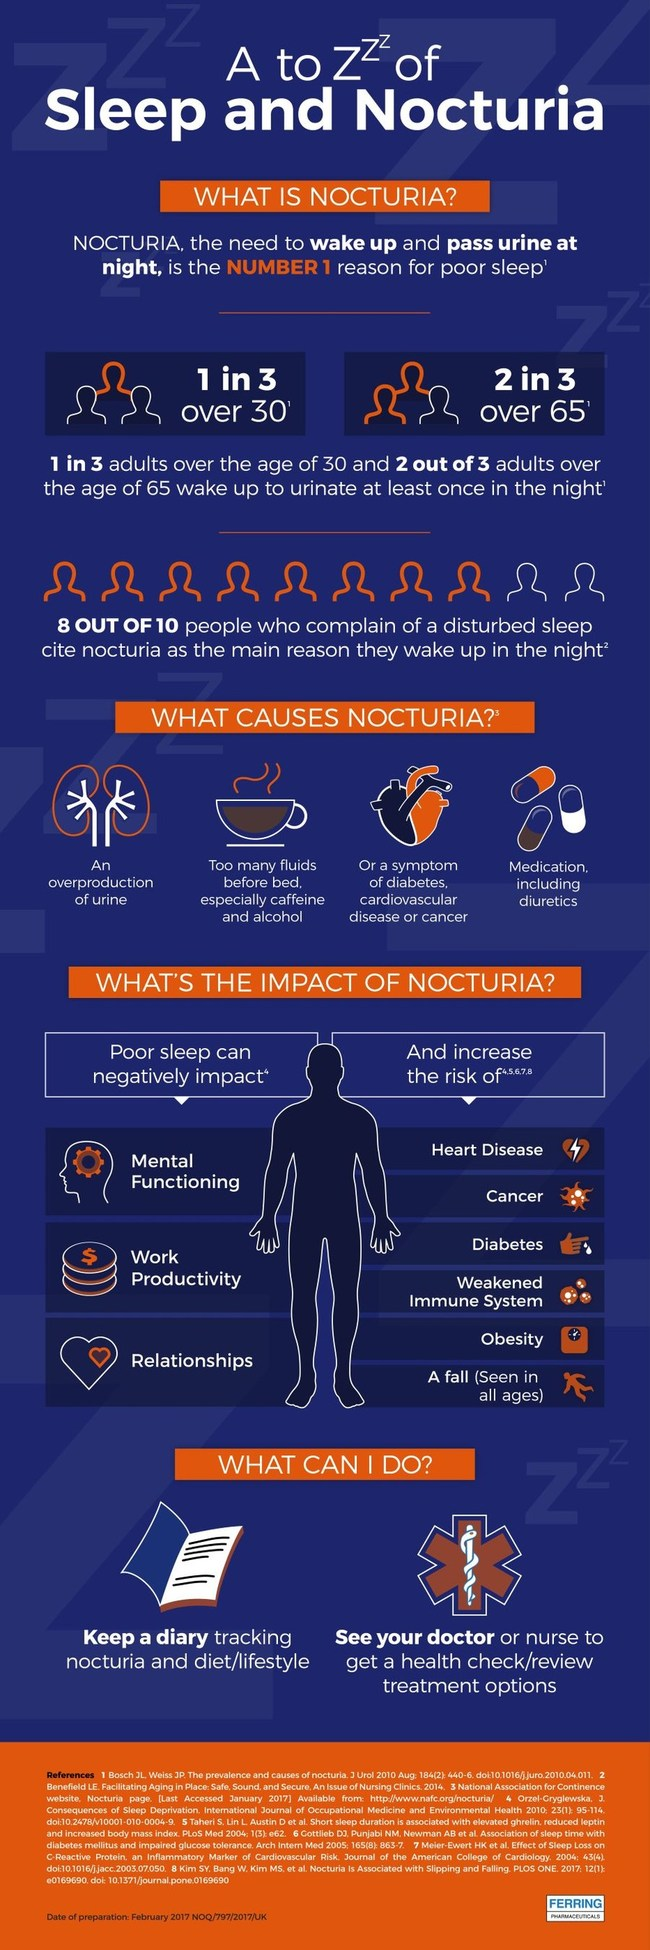 On World Sleep Day, experts say that waking to go to the toilet (nocturia) at night is the leading cause of a broken night's sleep. Learn more about nocturia via the 'A to Zz of sleep and nocturia'